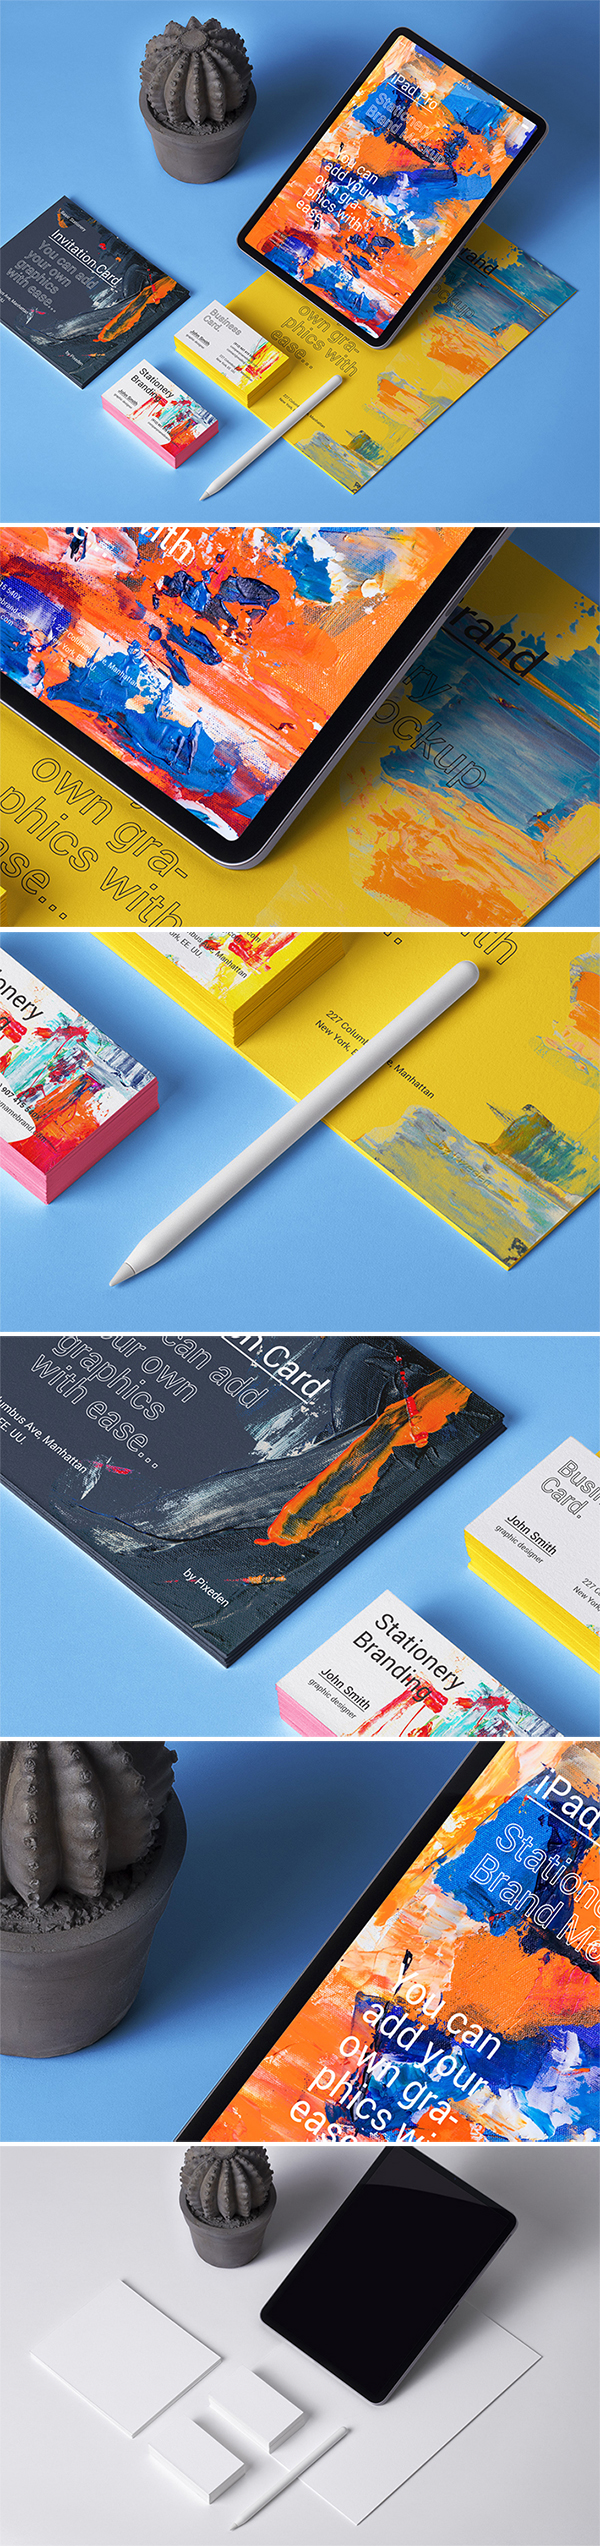 Free Download Creative iPad Stationery Mockup (PSD)